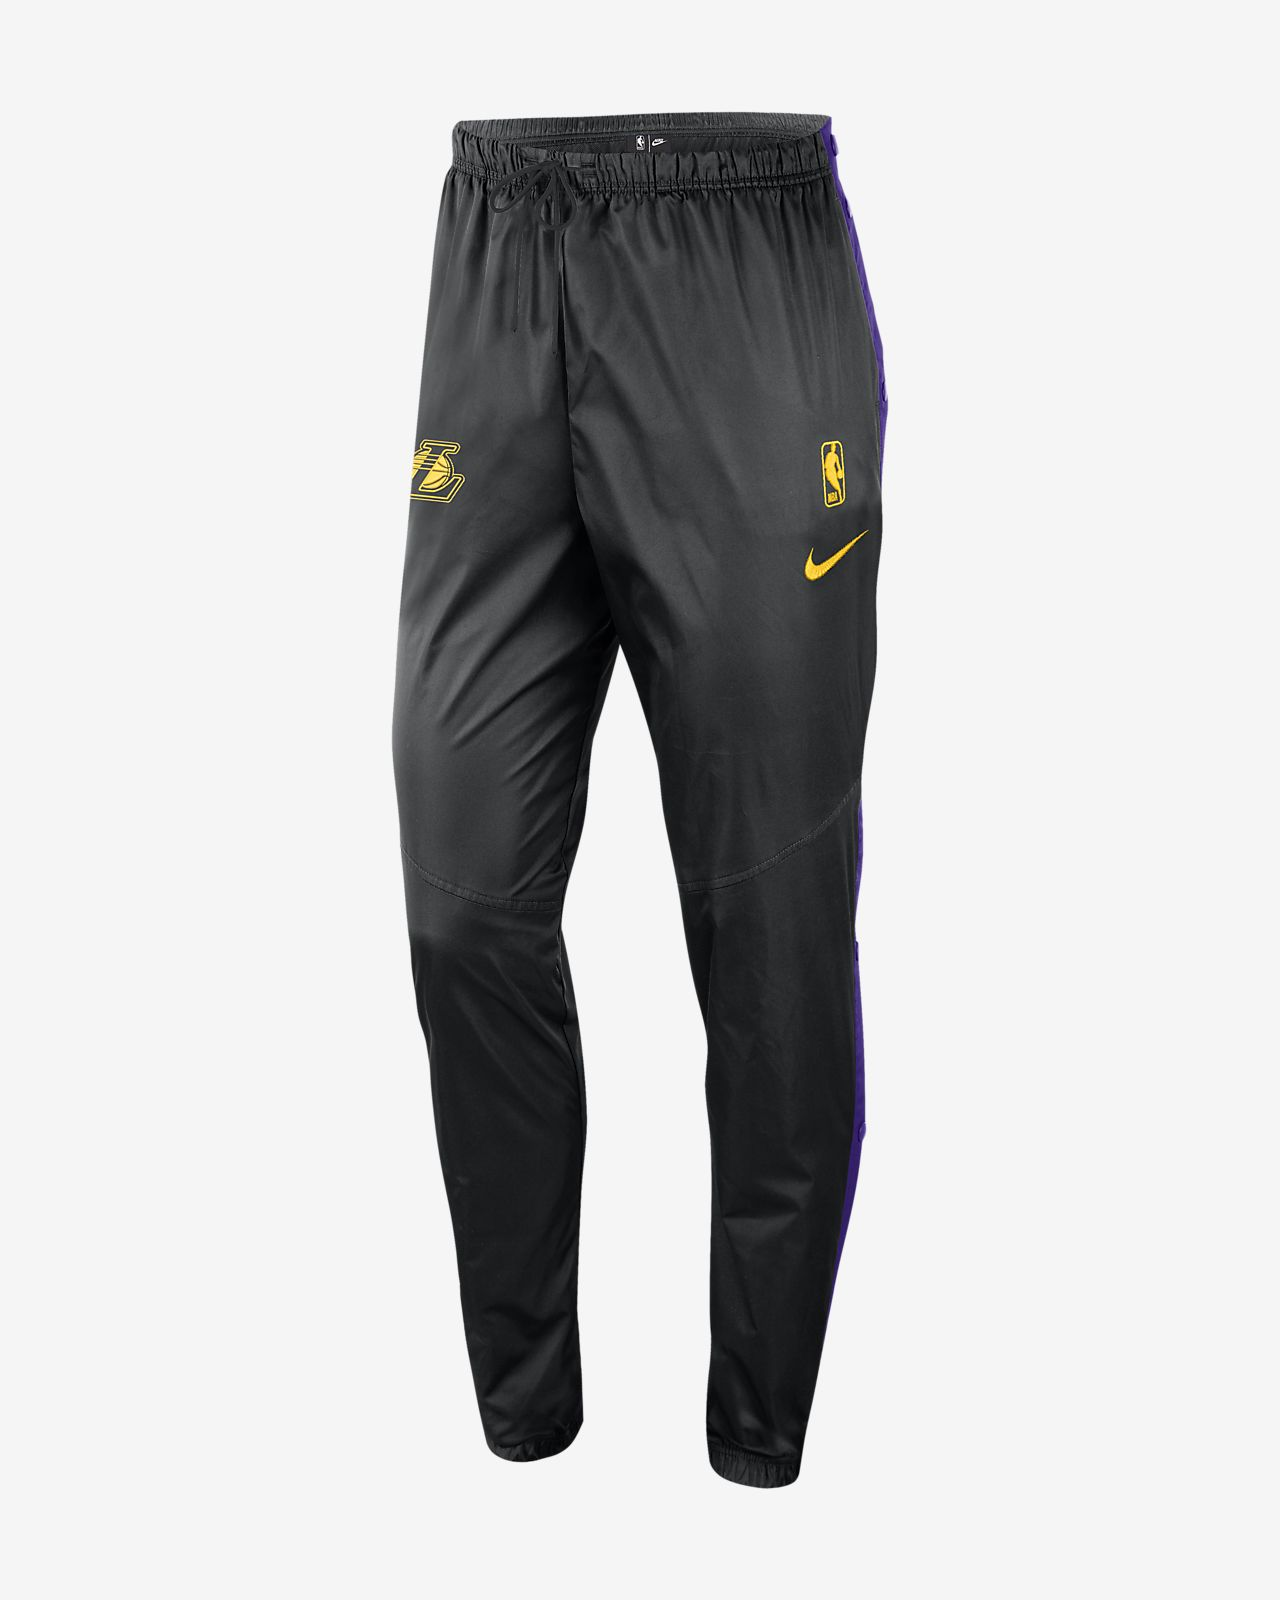 Los Angeles Lakers Nike Women's NBA Trousers